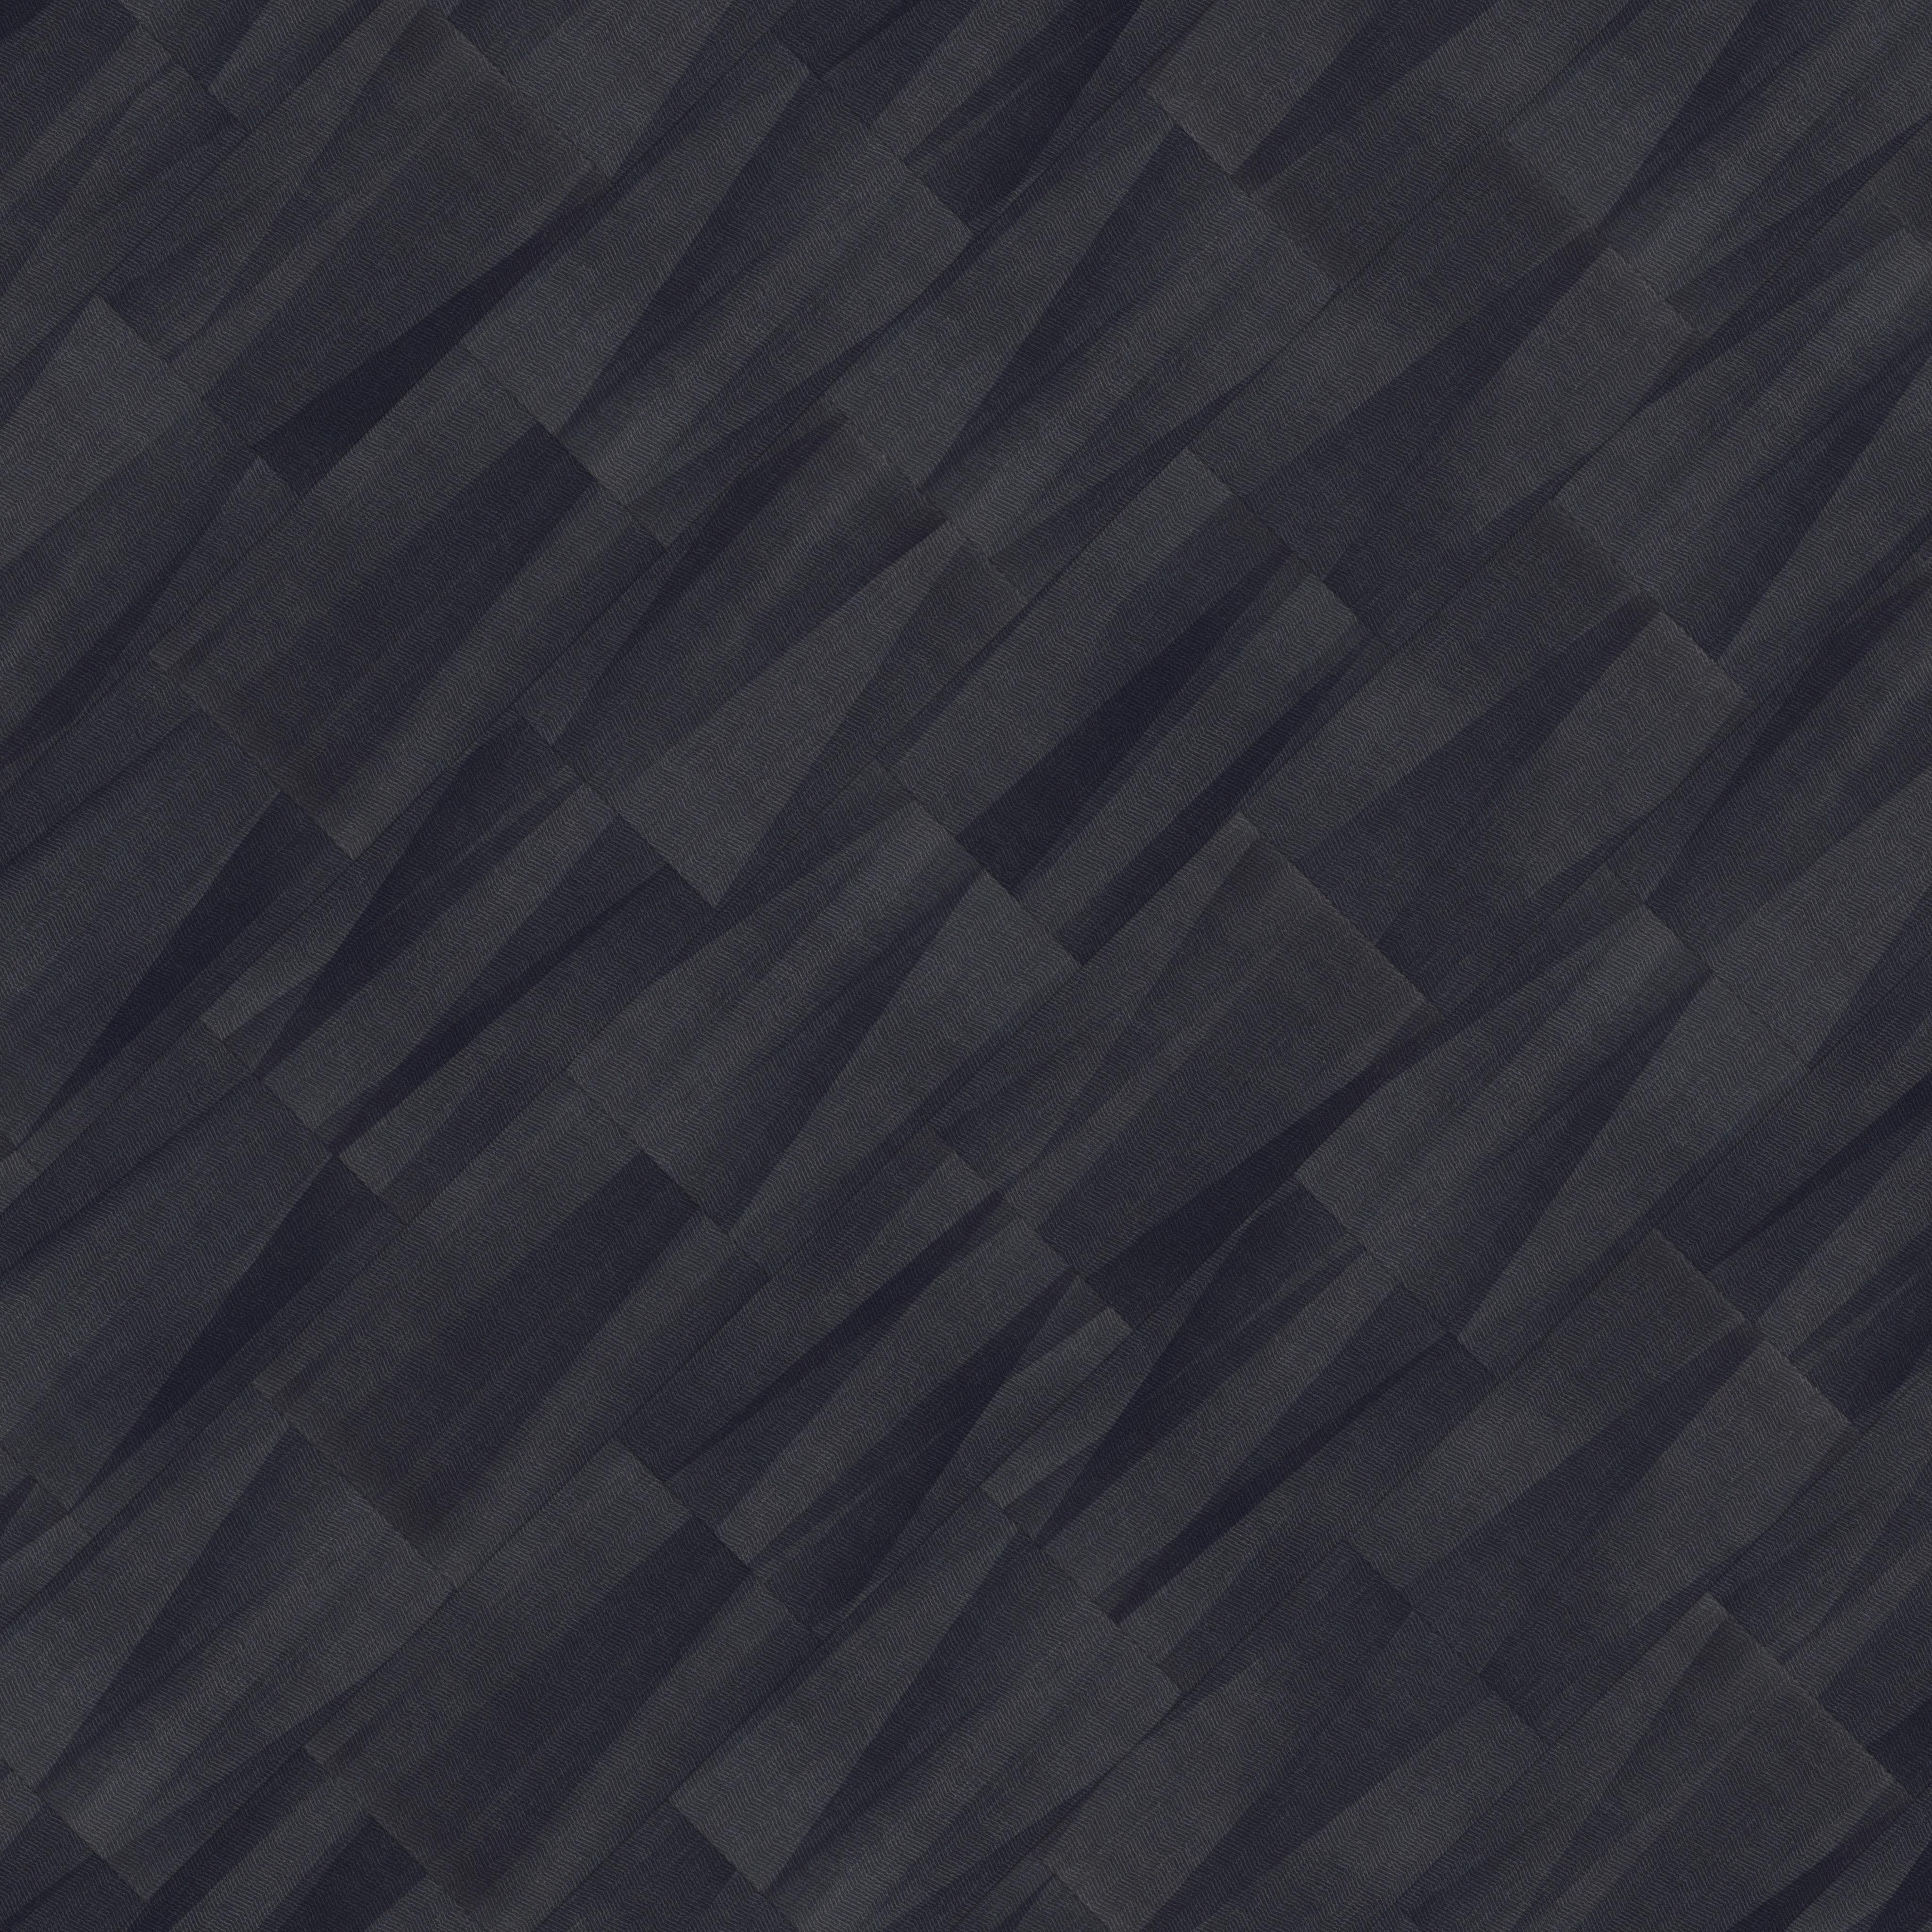 Stellar Black  runs across a wide public space. In close-up, its dark-grey tones are carefully balanced in a soft woven texture.